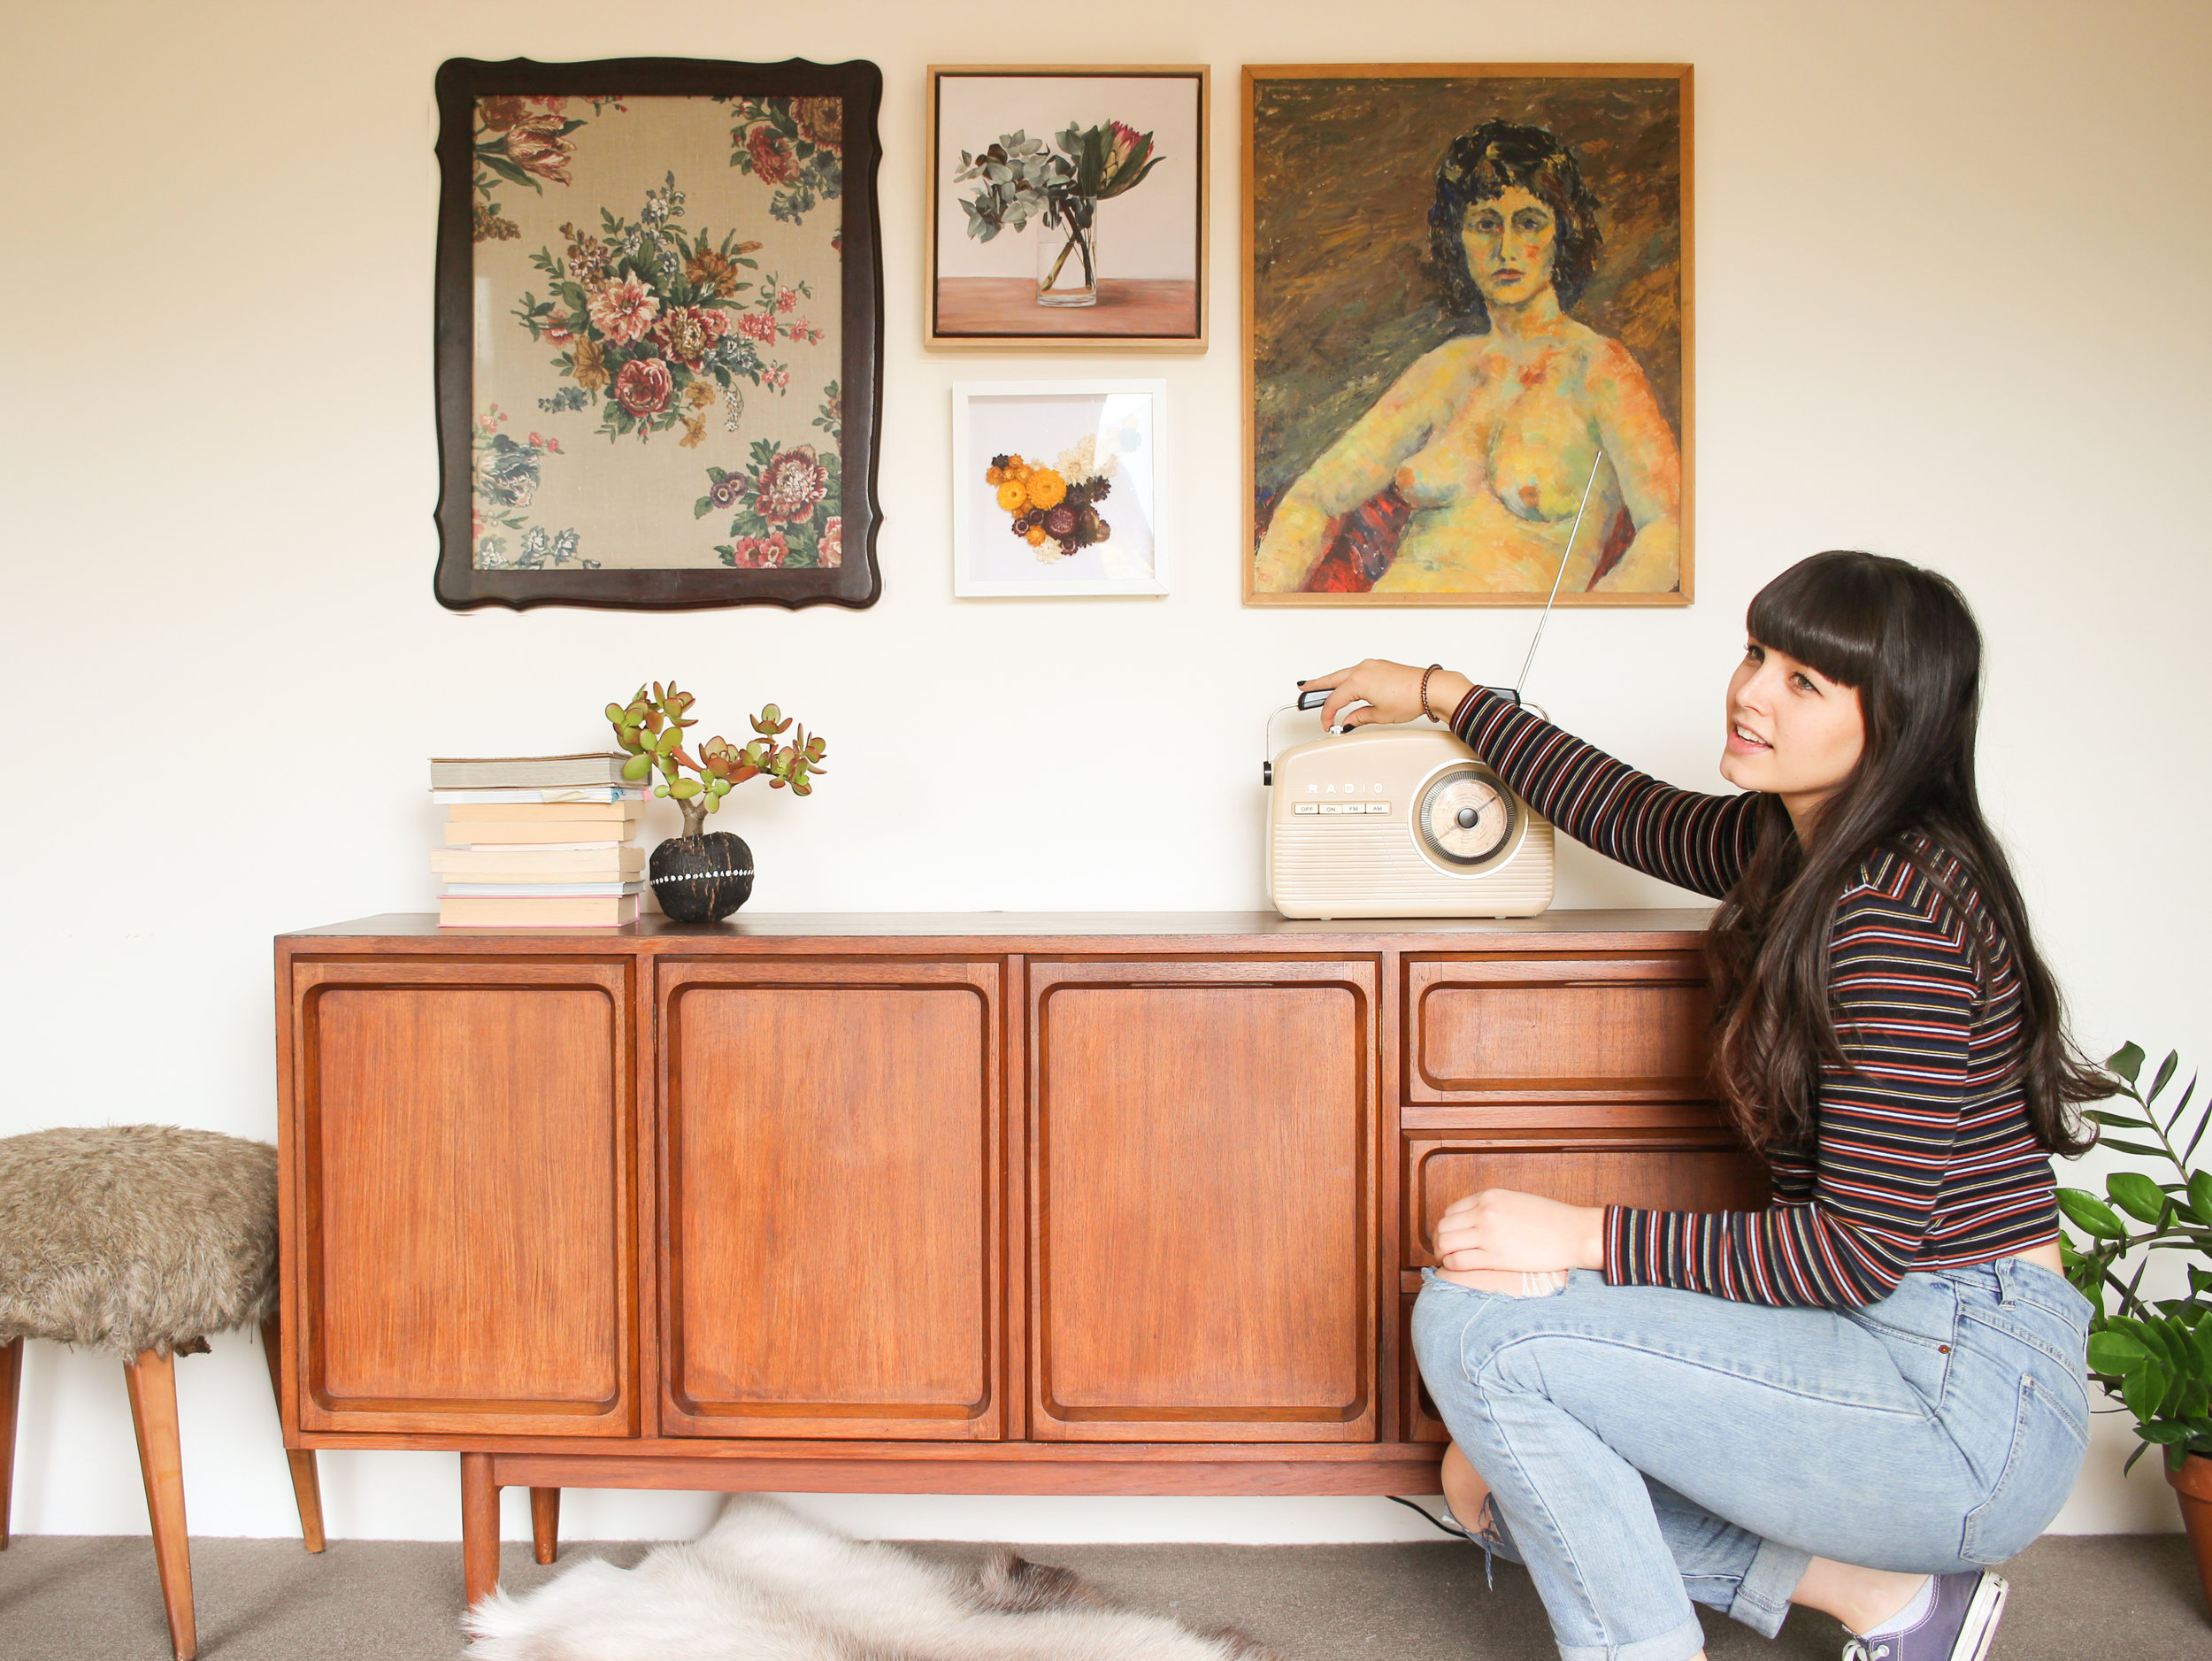 Music is a very important element when it comes to styling my home!